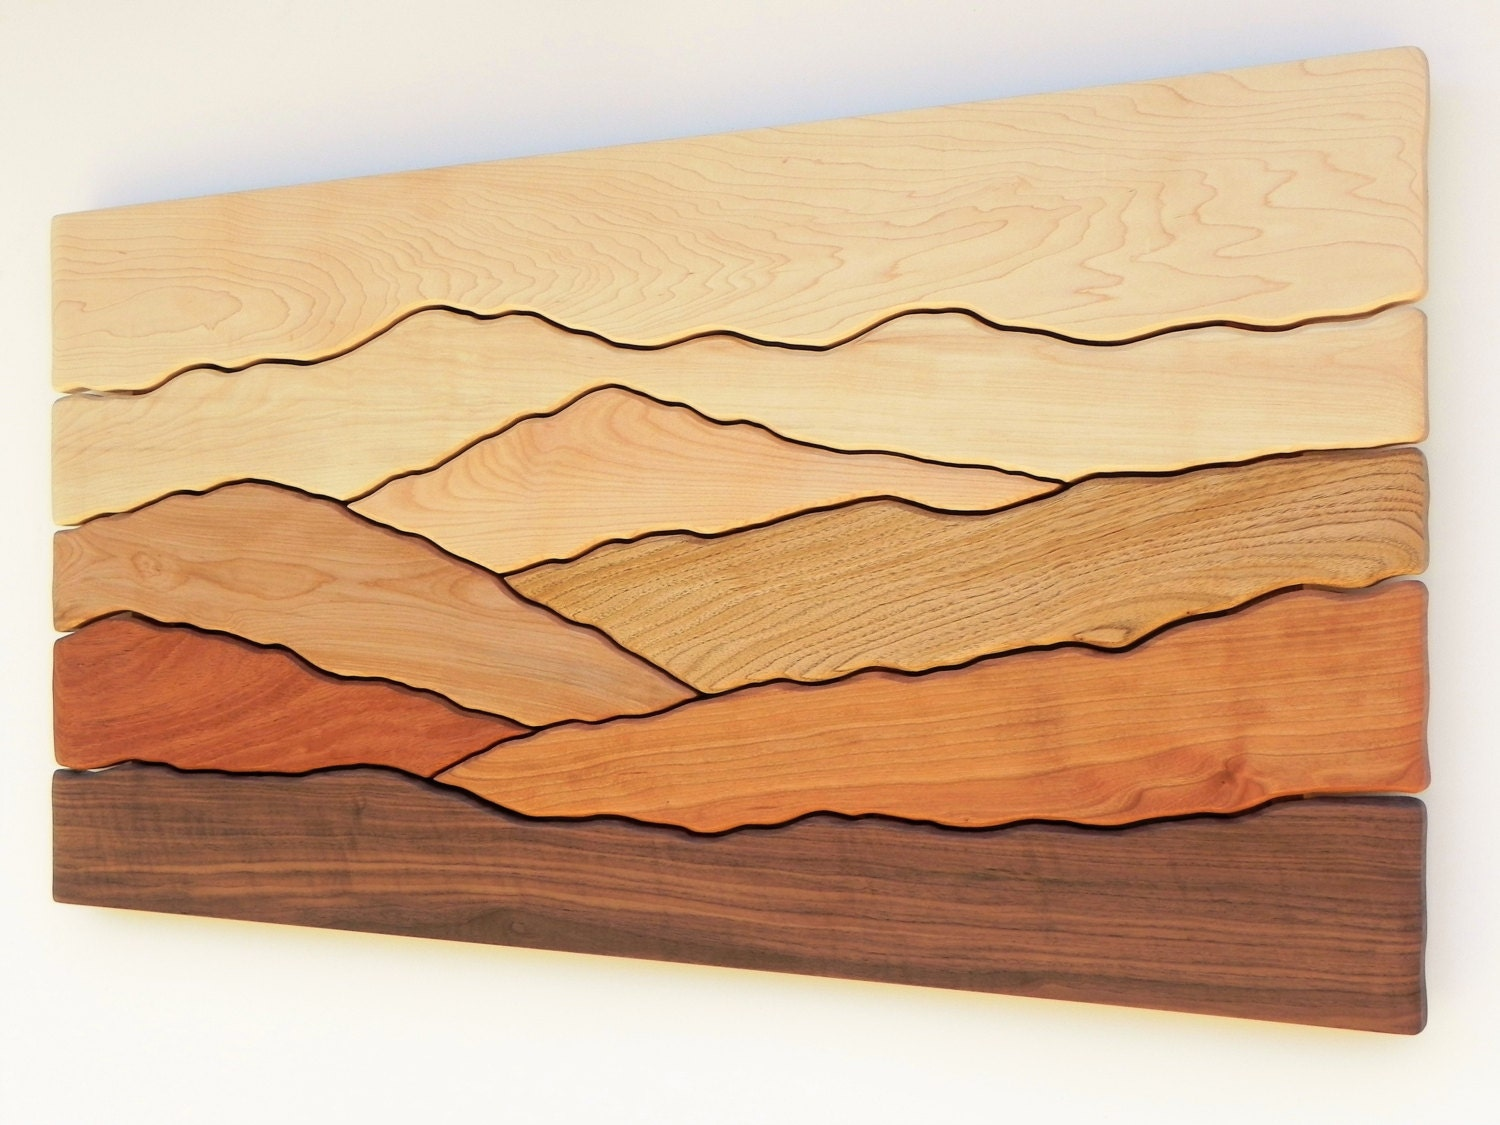 Mountain Scene Wall Art /Sugar Maple, Yellow Birch, Red Birch, Cherry,  Butternut, Mahogany, Black Walnut/